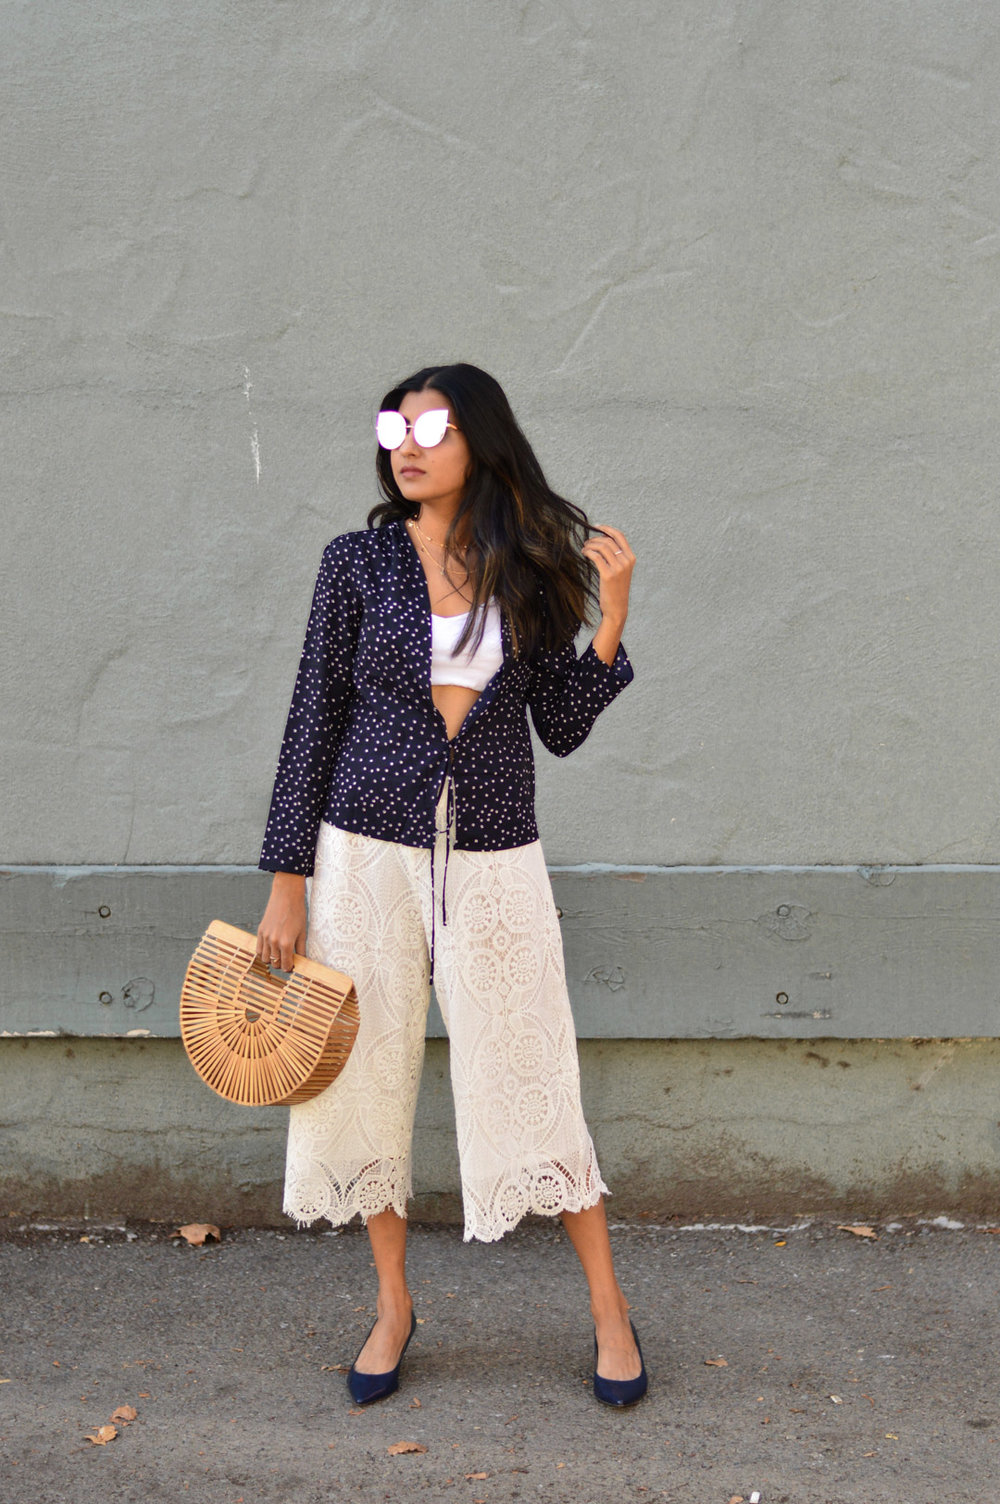 stars-print-fall-fashion-lace-culottes-blogger 1